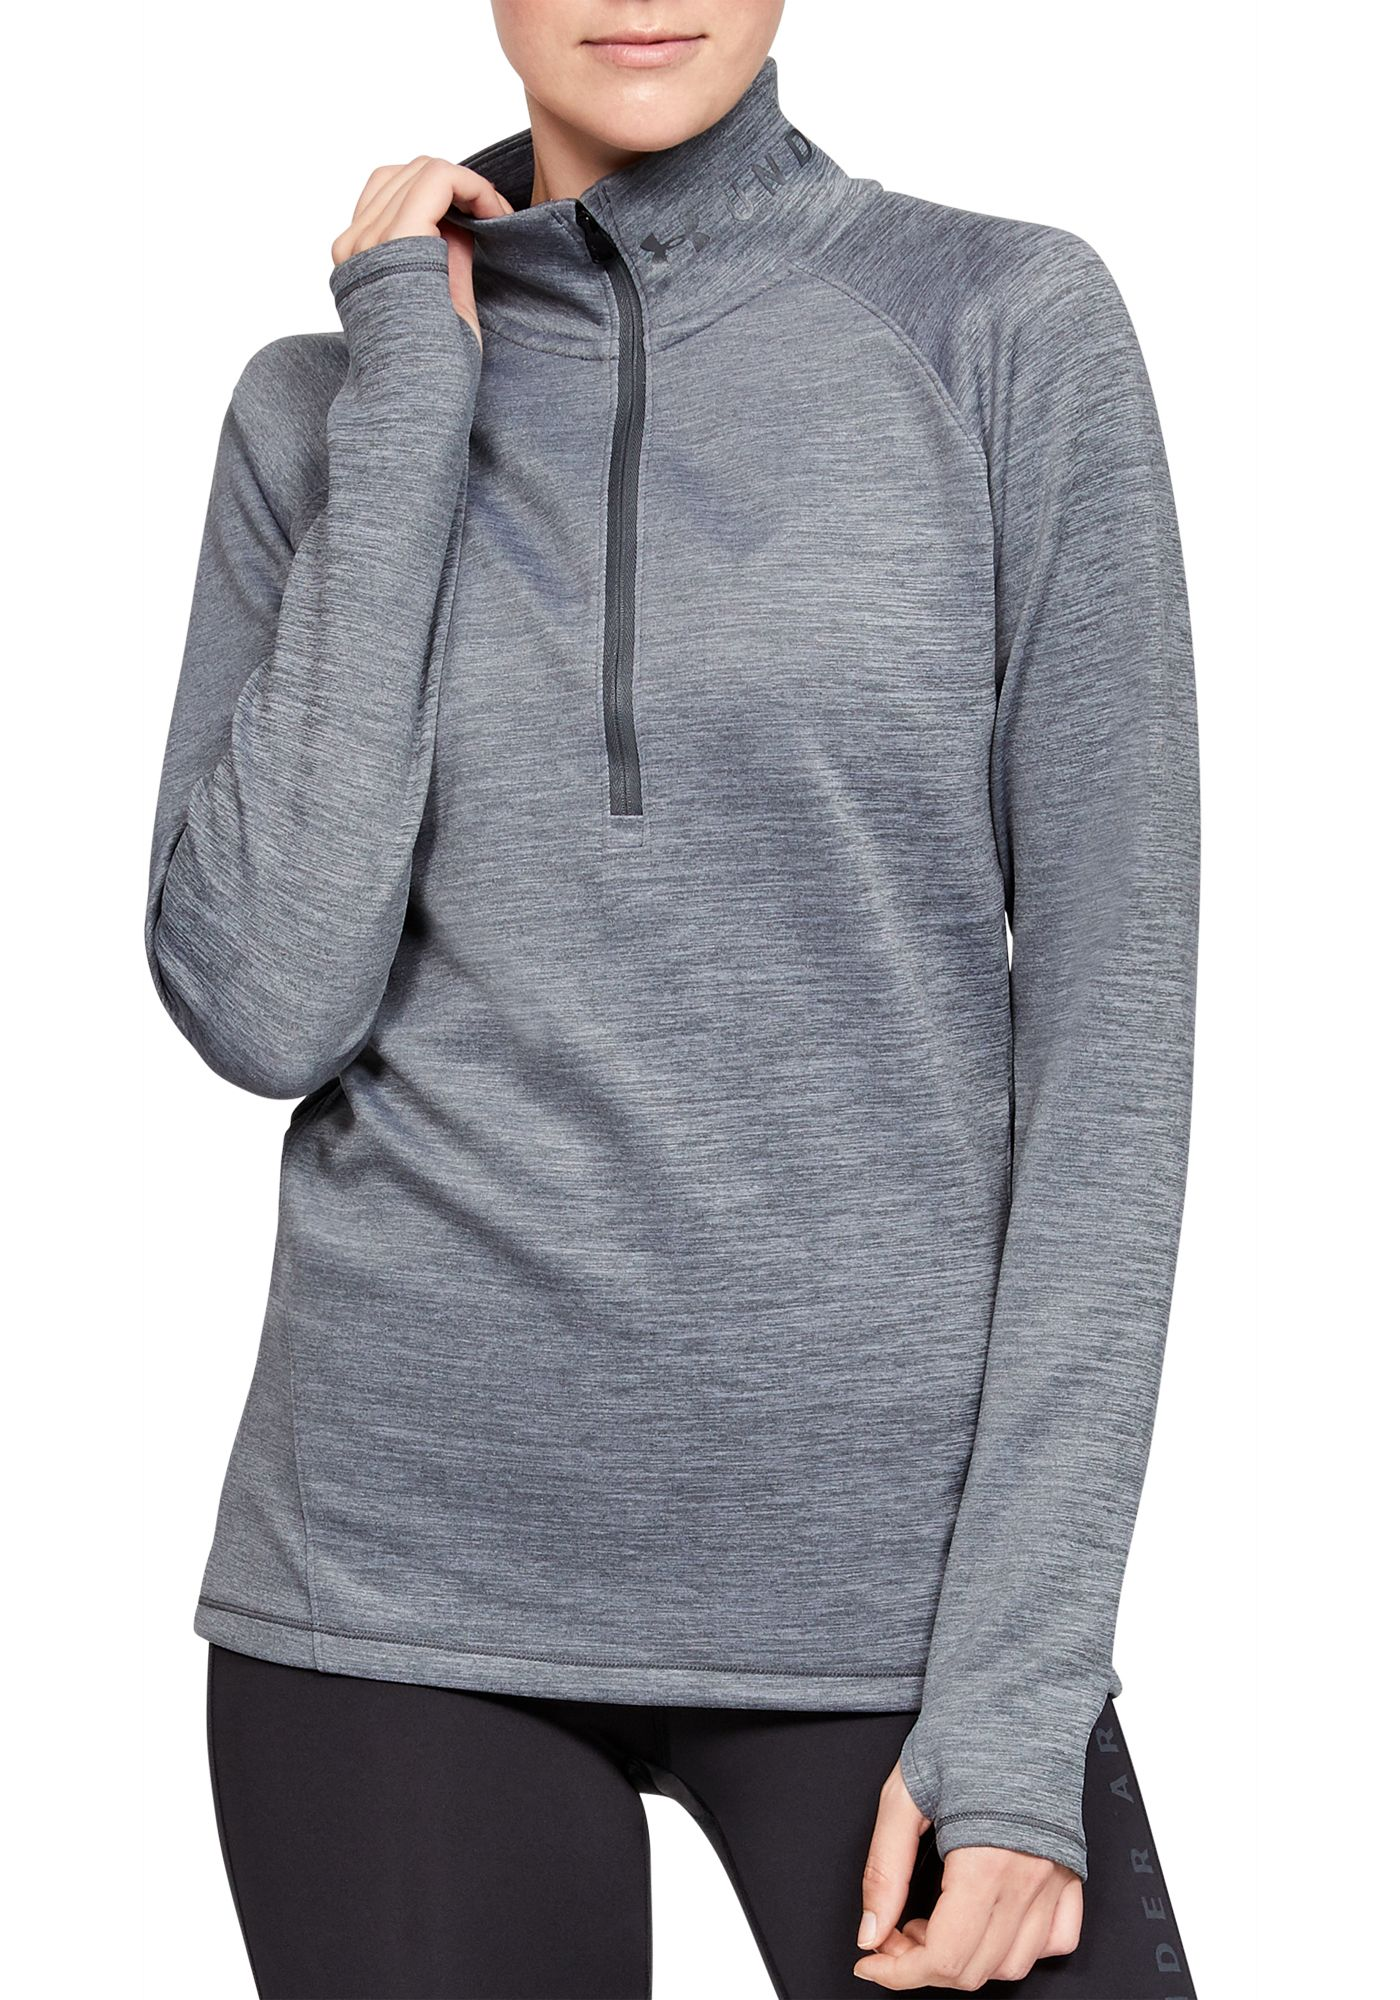 Under Armour Women's ColdGear Armour Half-Zip Pullover